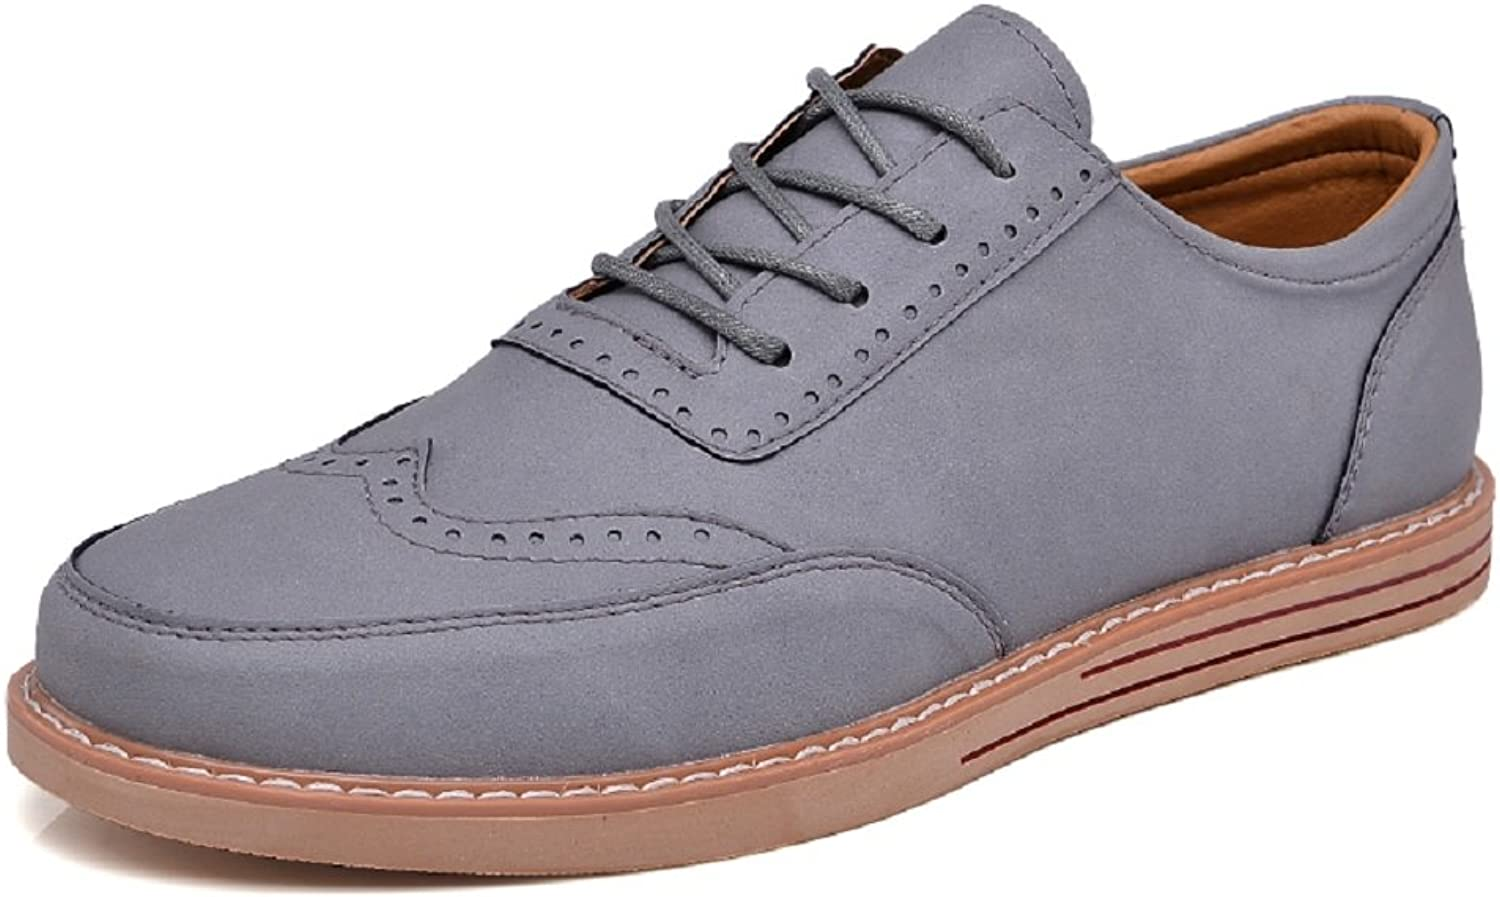 QISHENG Men's Fashion Oxfords shoes Leisure Lace-up Unique Handmade Leather shoes Lightweight Comfortable Formal shoes